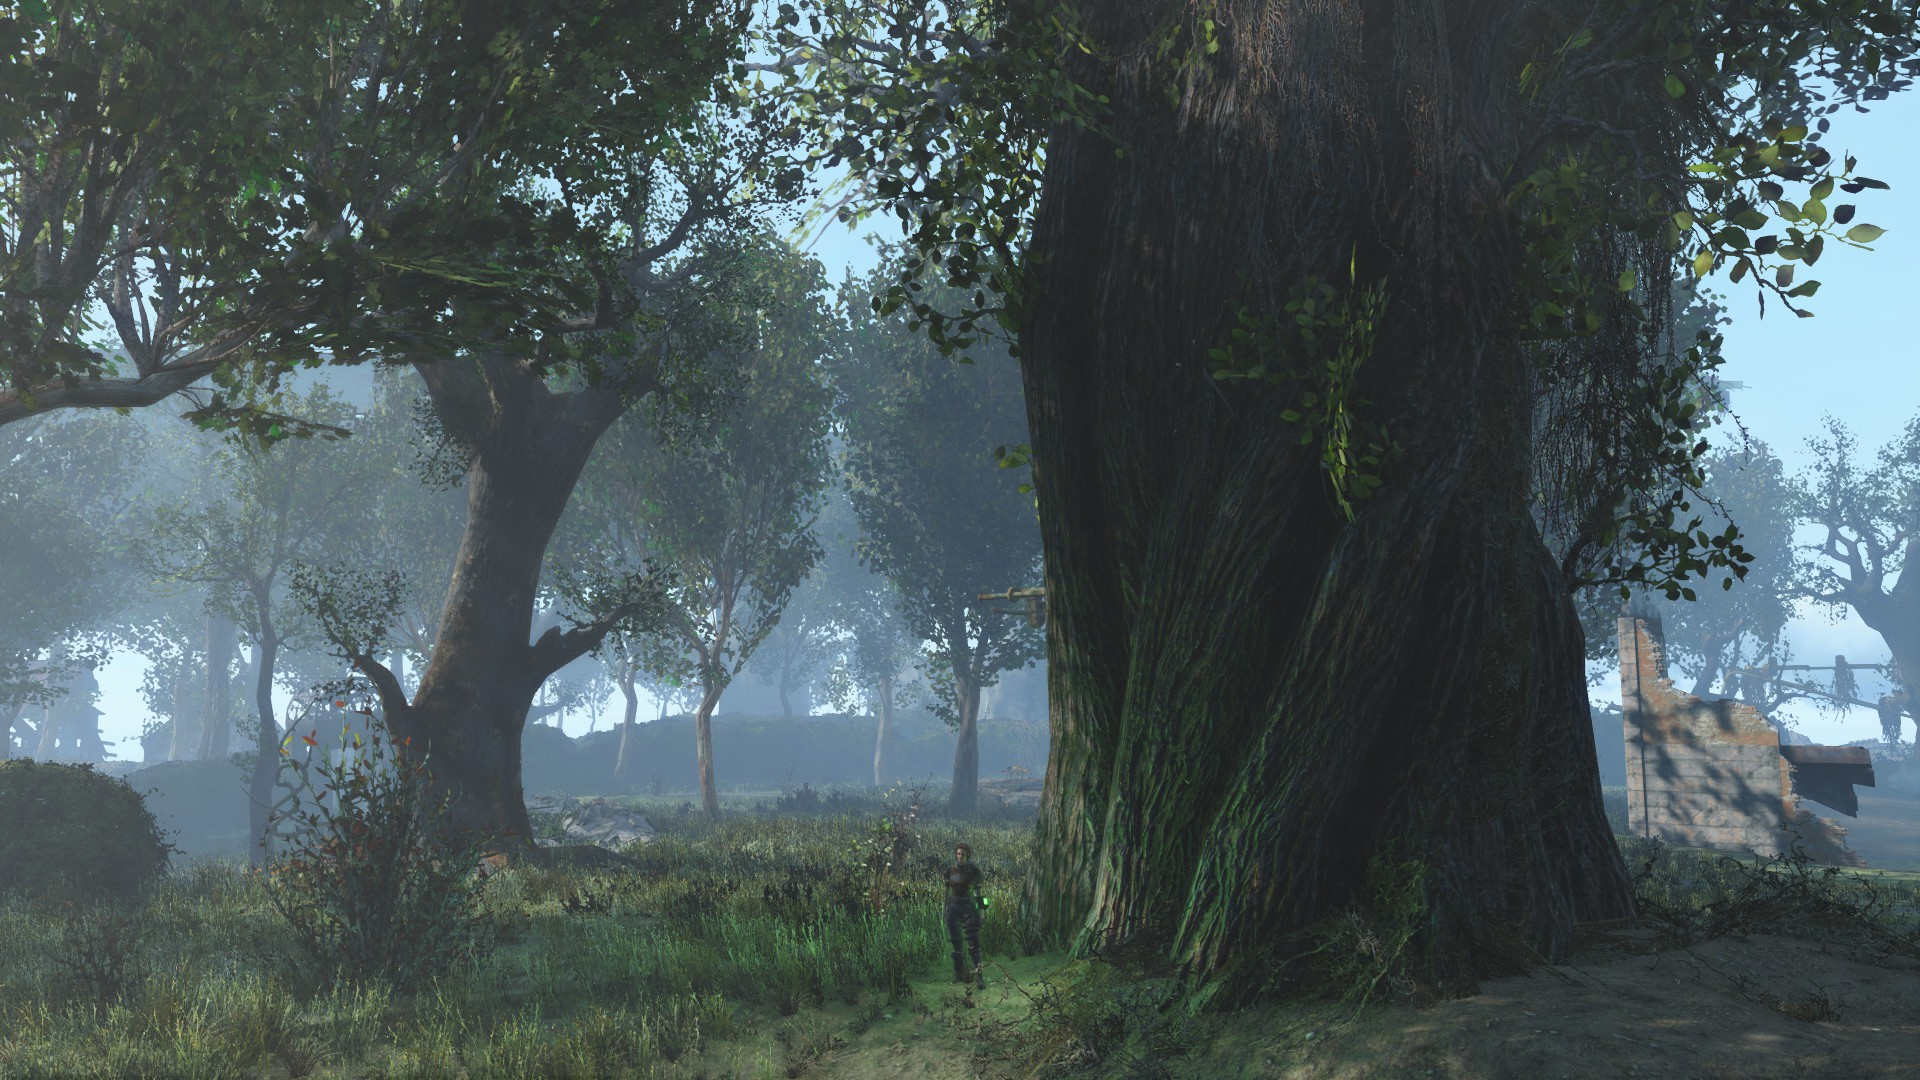 Giant Trees In New Eden image - Fallout: Liberty Hell mod for